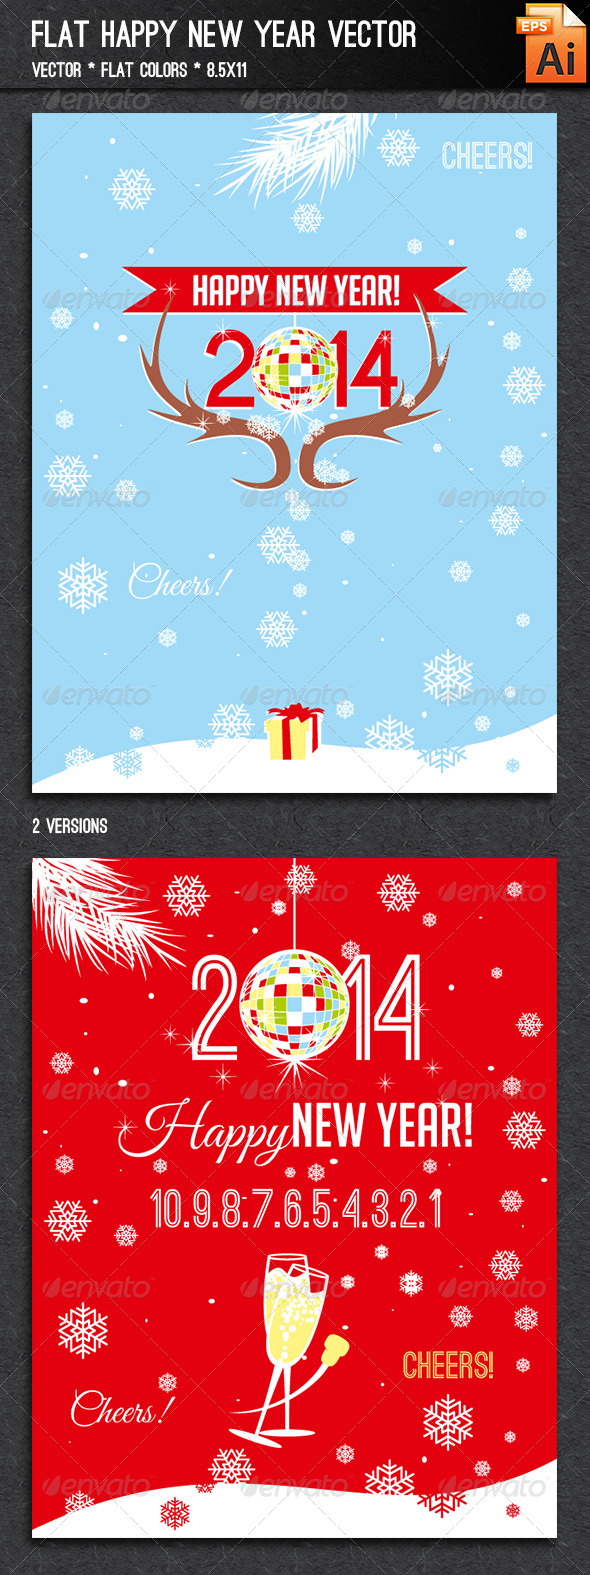 GraphicRiver Flat Happy New Year Vector 6472679